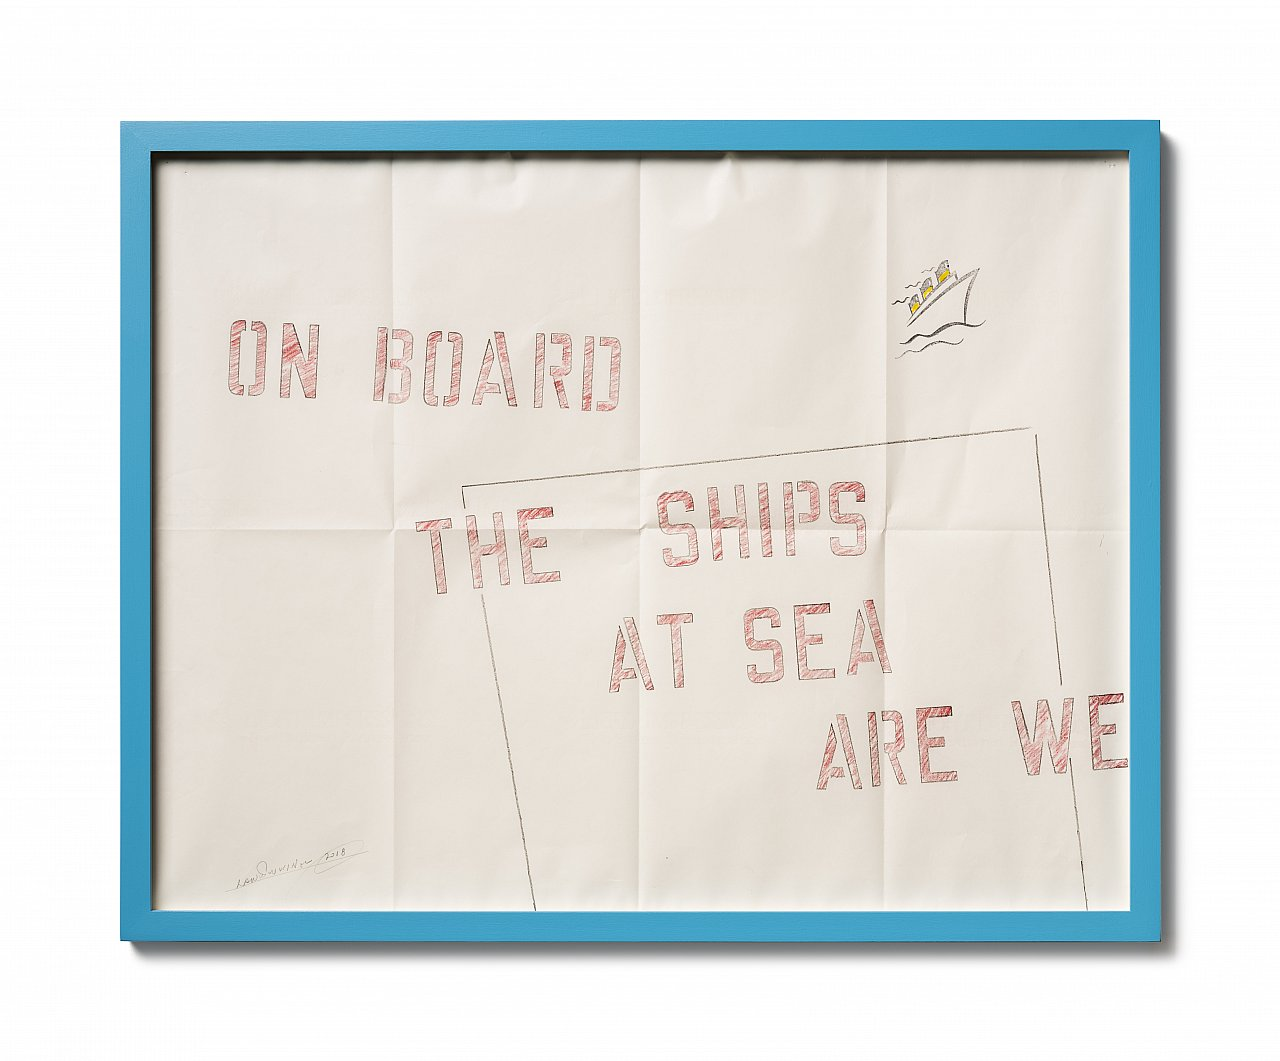 Lawrence Weiner – ON BOARD THE SHIPS AT SEA ARE WE, 2018, Faber Castell Bleistift, Faber Castell Tusche auf gefaltetem Archivpapier, 54 x 69 cm